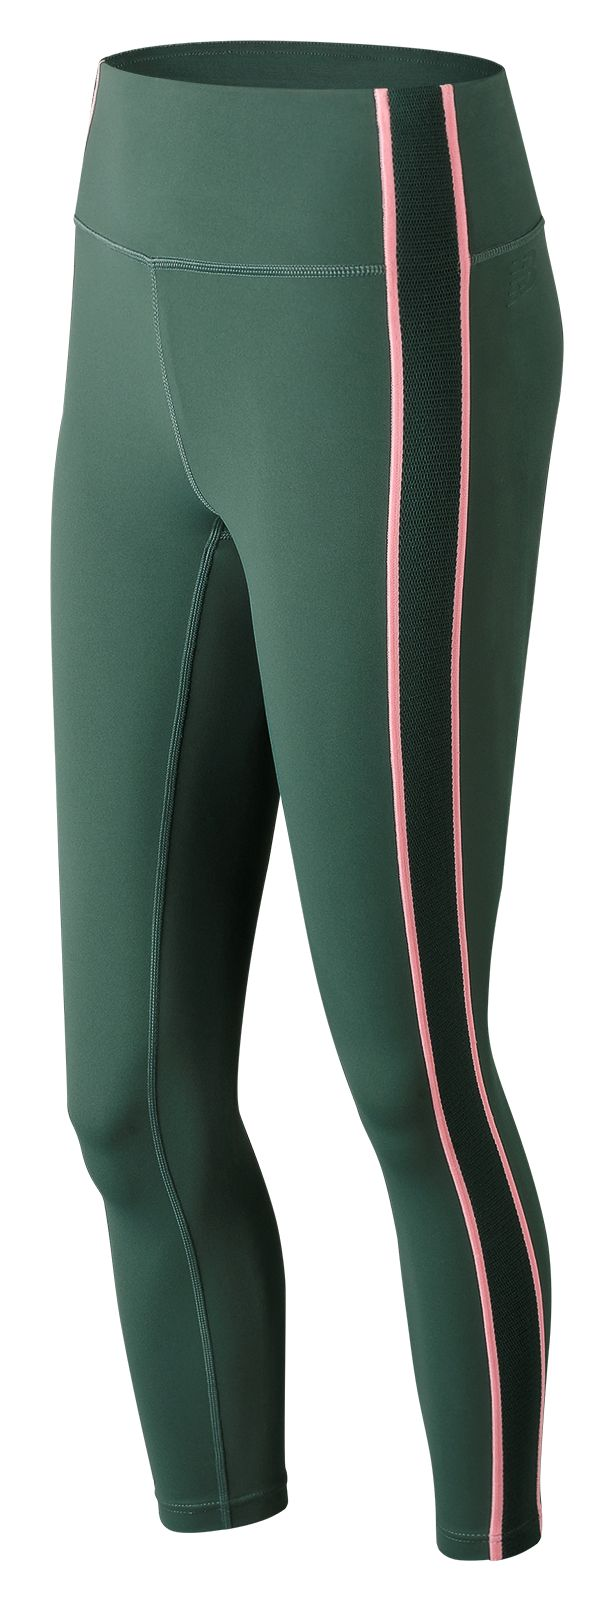 Women's Studio Enlightened Tight